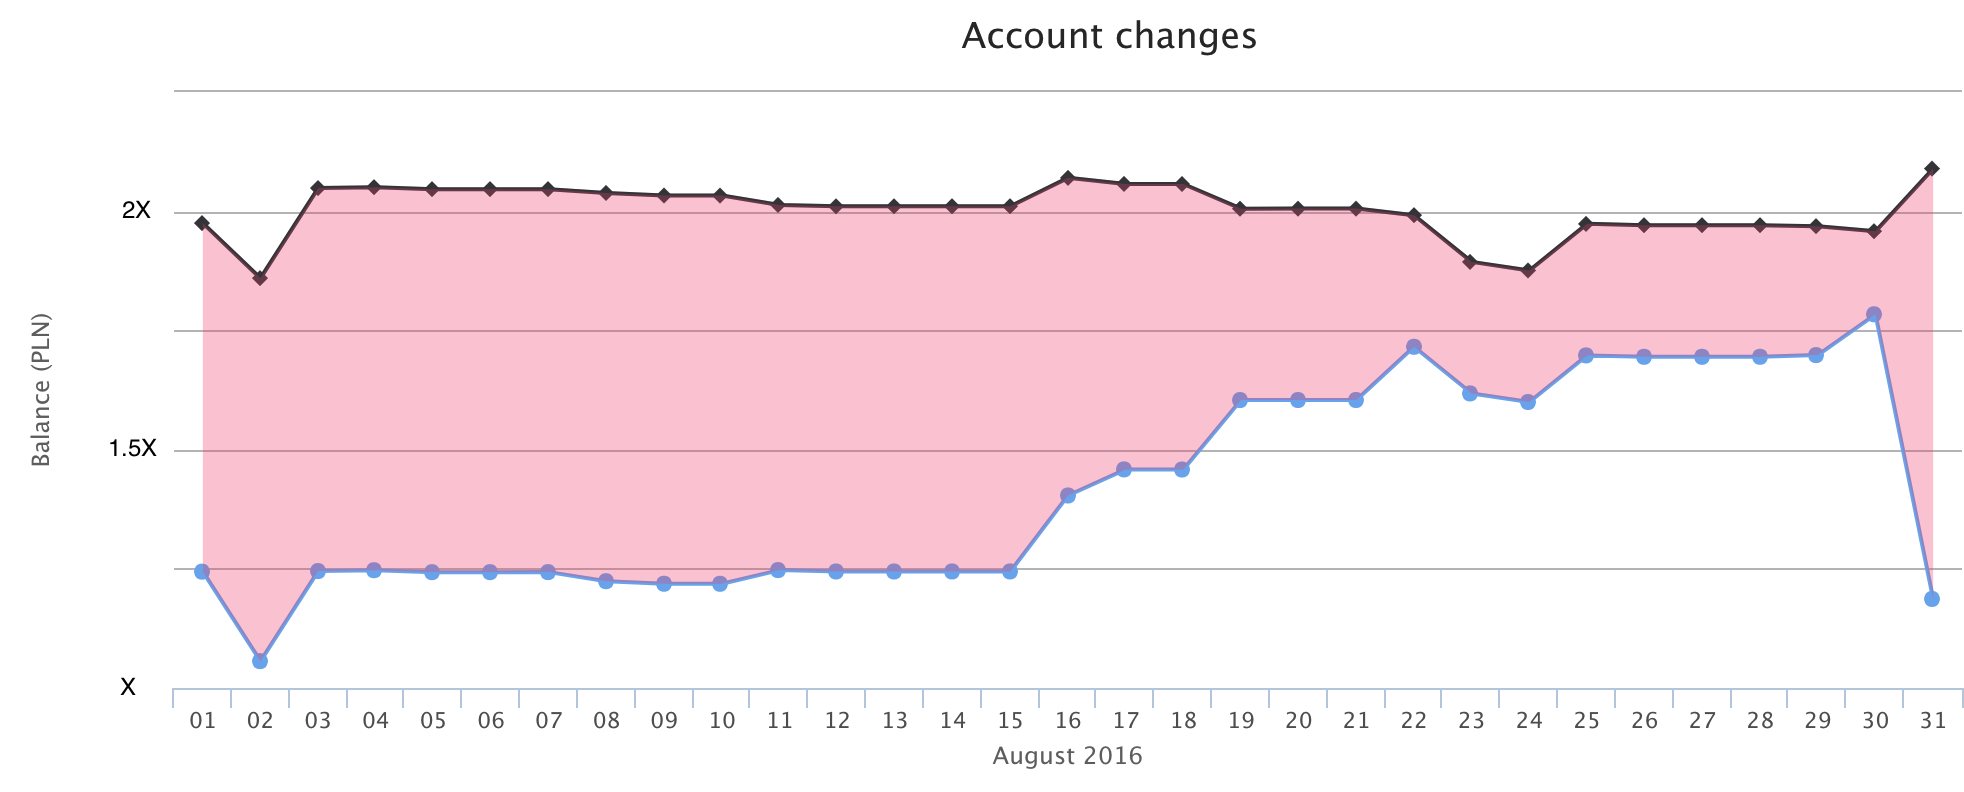 Account state and expected payments in August 2016